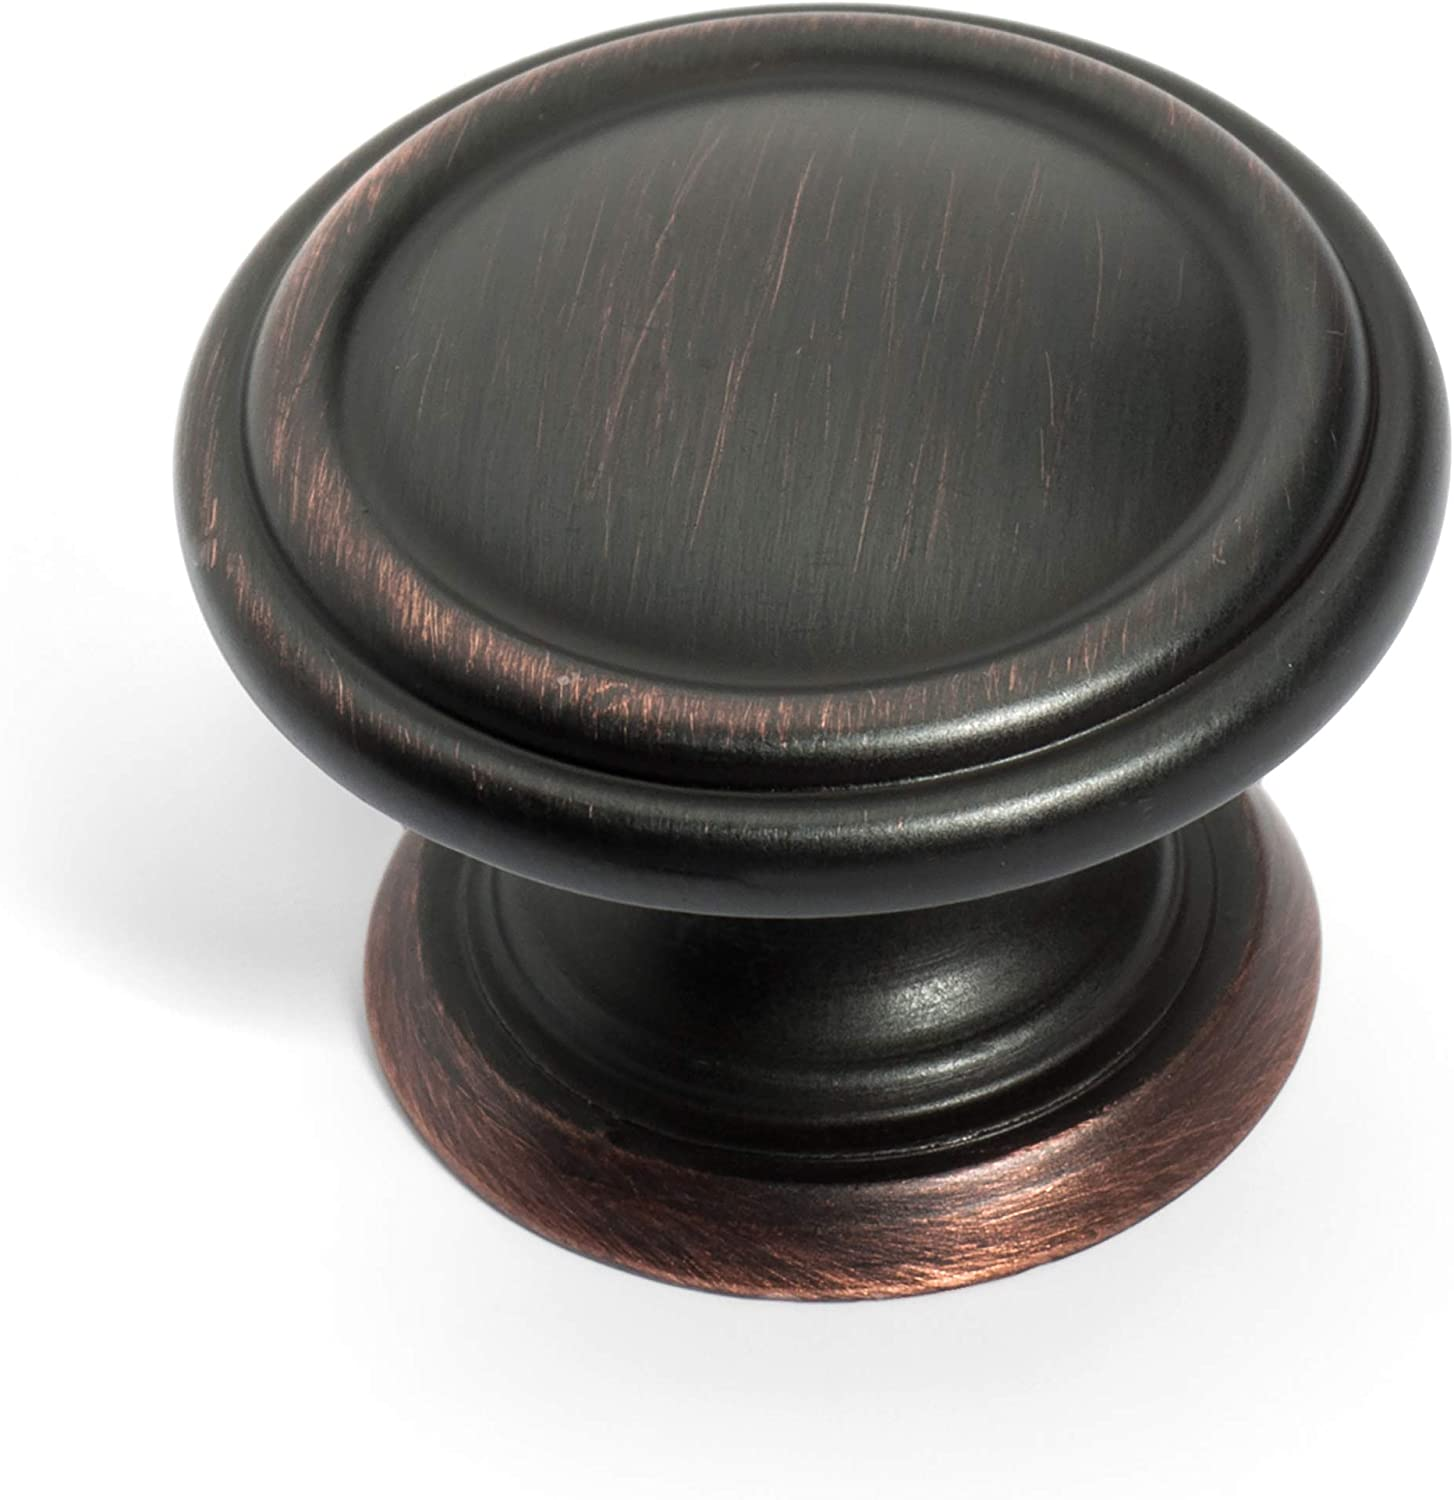 Dynasty Hardware K-8038-S-12P Two Cabinet Knob Max 79% OFF Ve Limited Special Price Ring